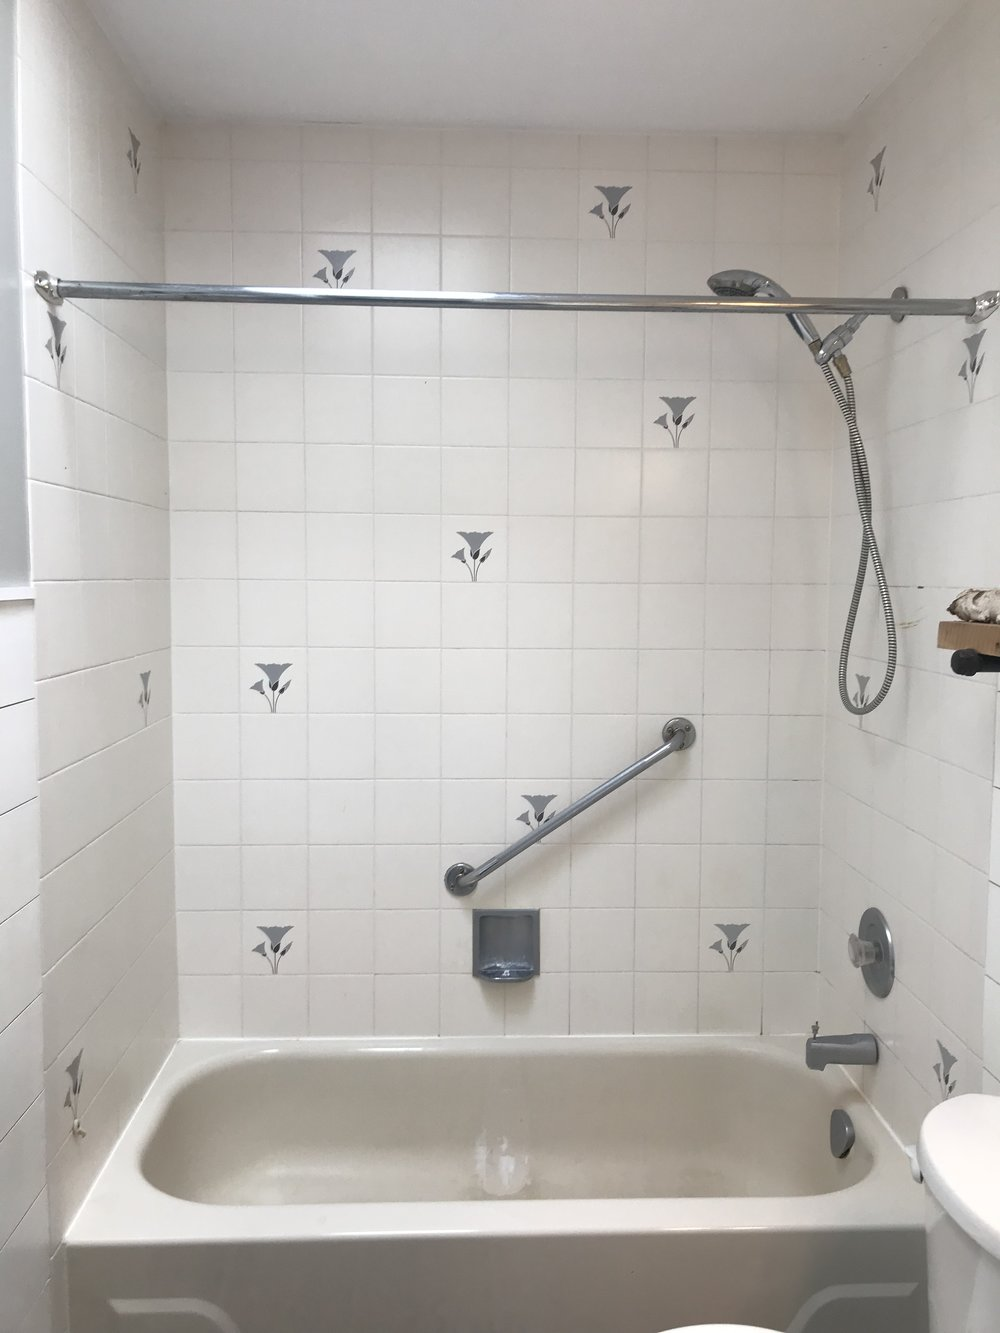 Refinished Bathroom Tub & Tile — The Penny Drawer